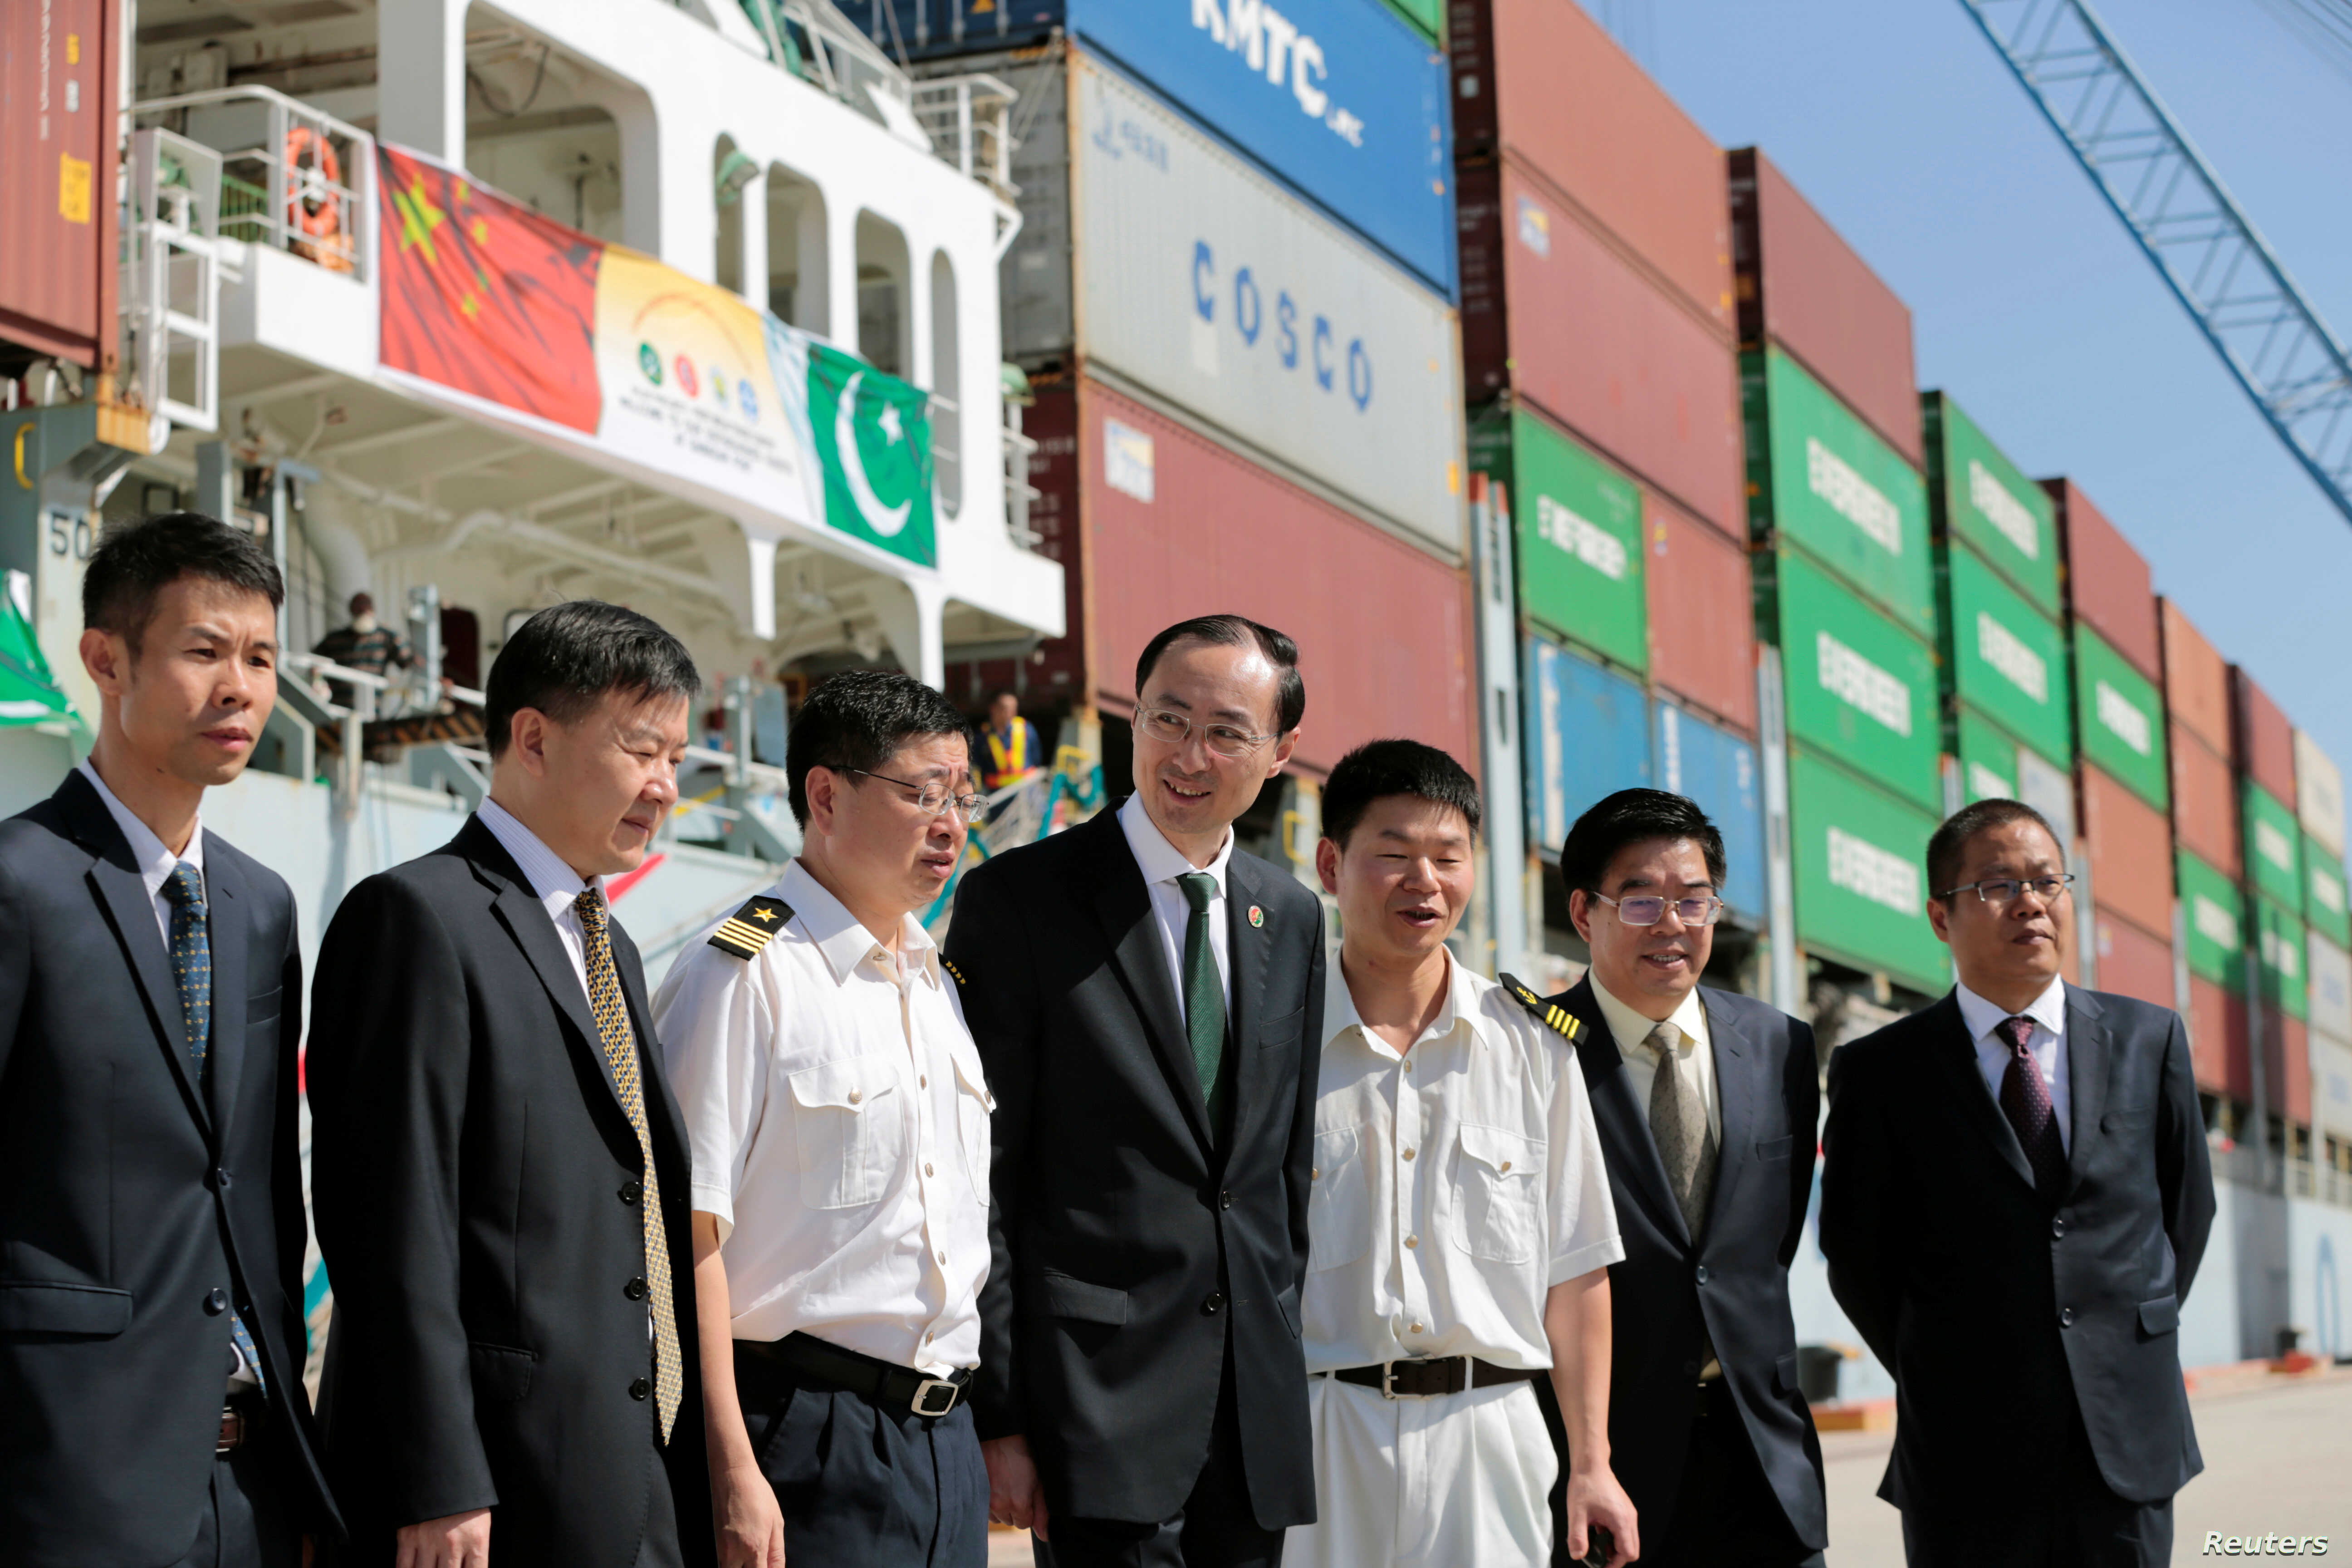 Chinese Ambassador to Pakistan, Sun Weidong (C), poses for pictures with members of his staff and crew of the first container ship to depart after the inauguration of the China Pakistan Economic Corridor port in Gwadar, Pakistan, Nov. 13,  2016.